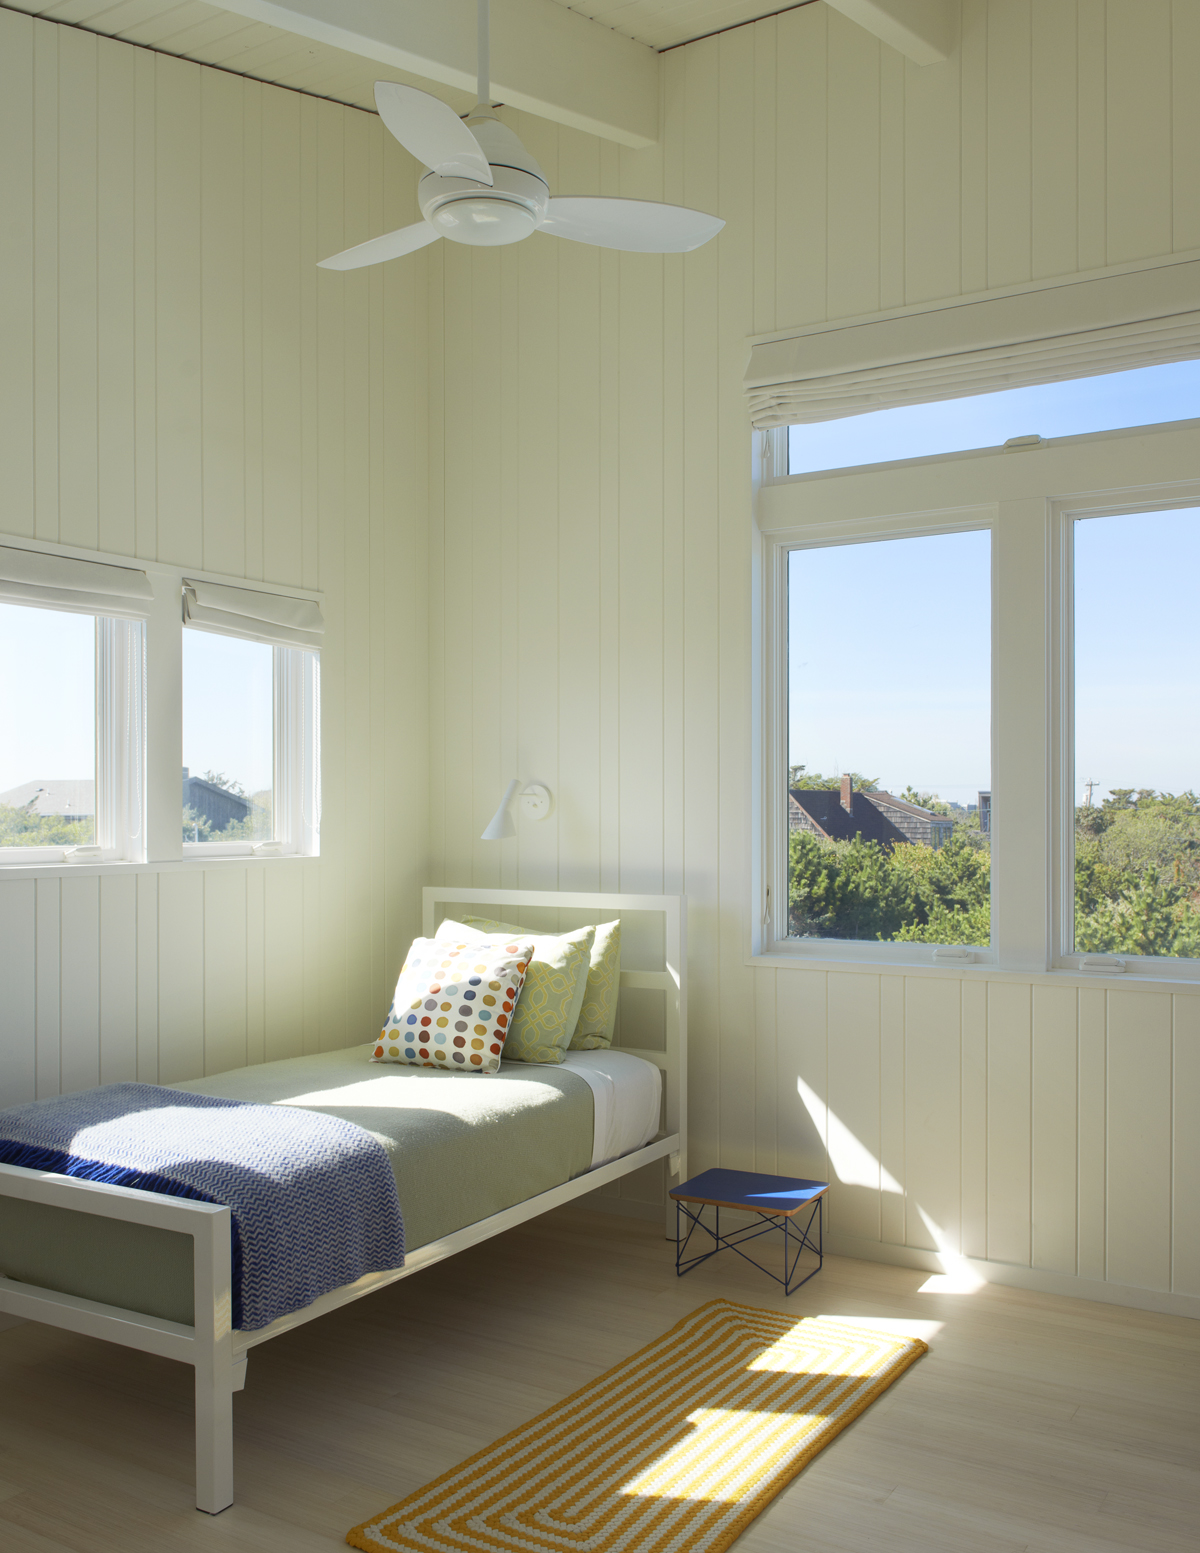 Fire Island beach house -- bedroom with deck